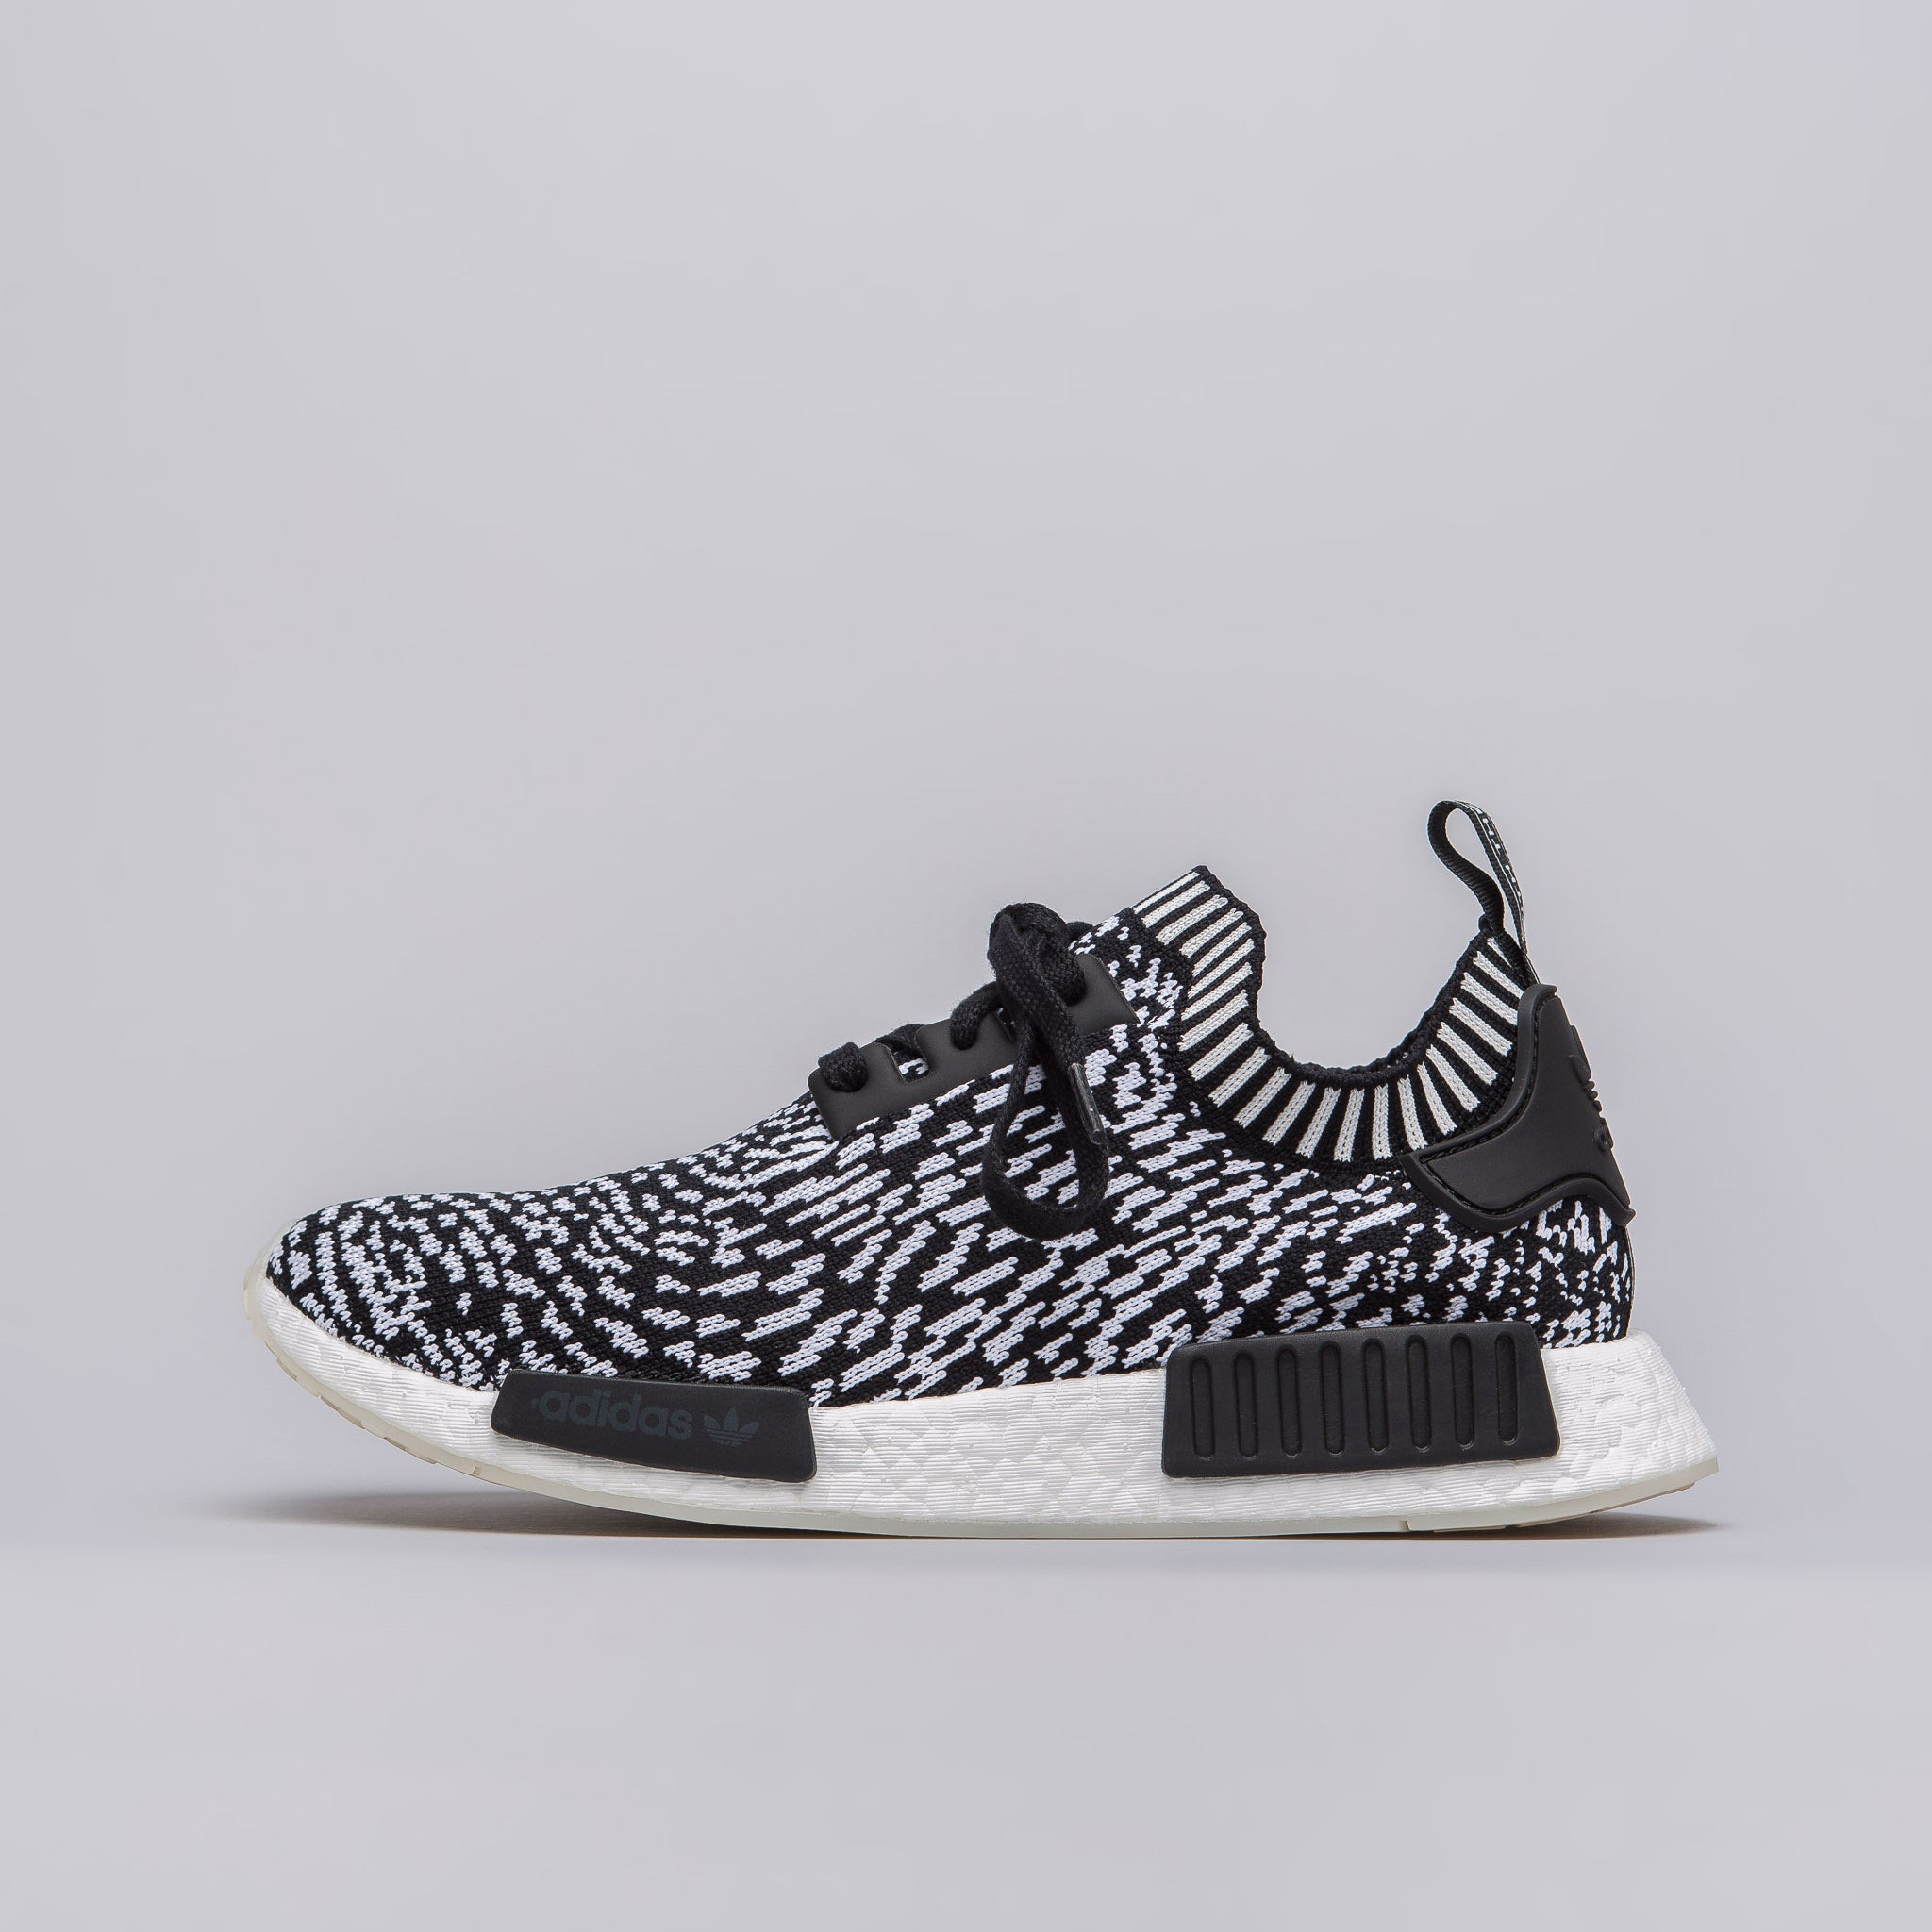 Adidas NMD Runner R1 Tri Color Black Primeknit Yeezy Boost 7.5